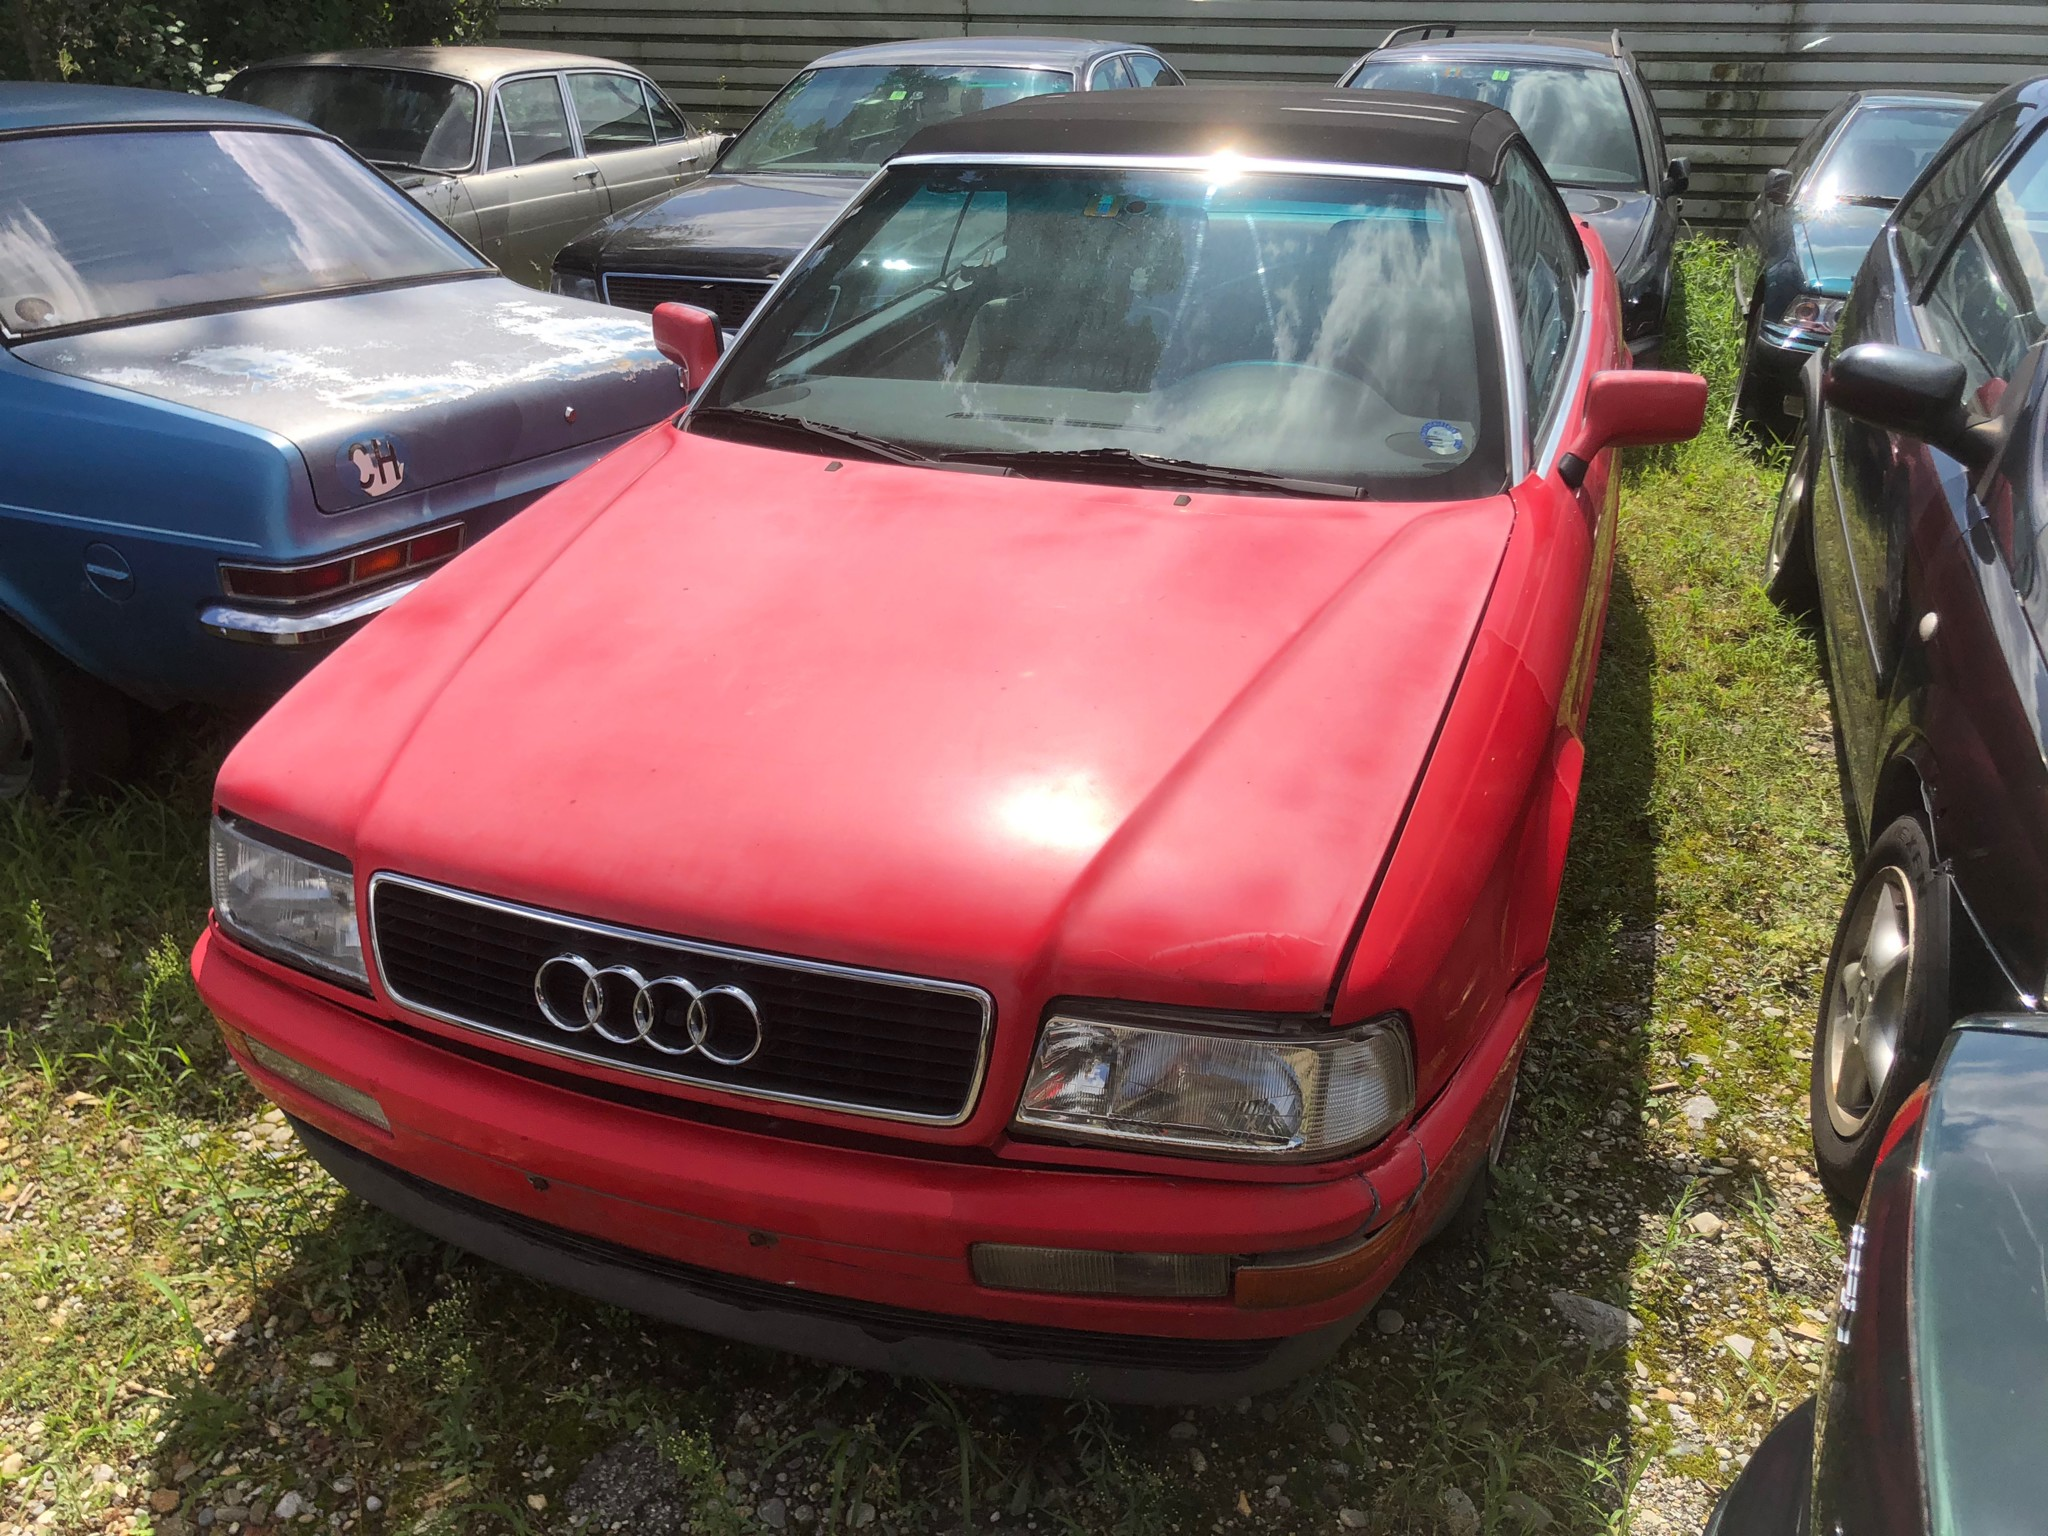 Buy Convertible Audi Cabriolet Cabrio 2 4i Oldtimer 1991 Rot 250000 Km At 1500 Chf On Carforyou Ch